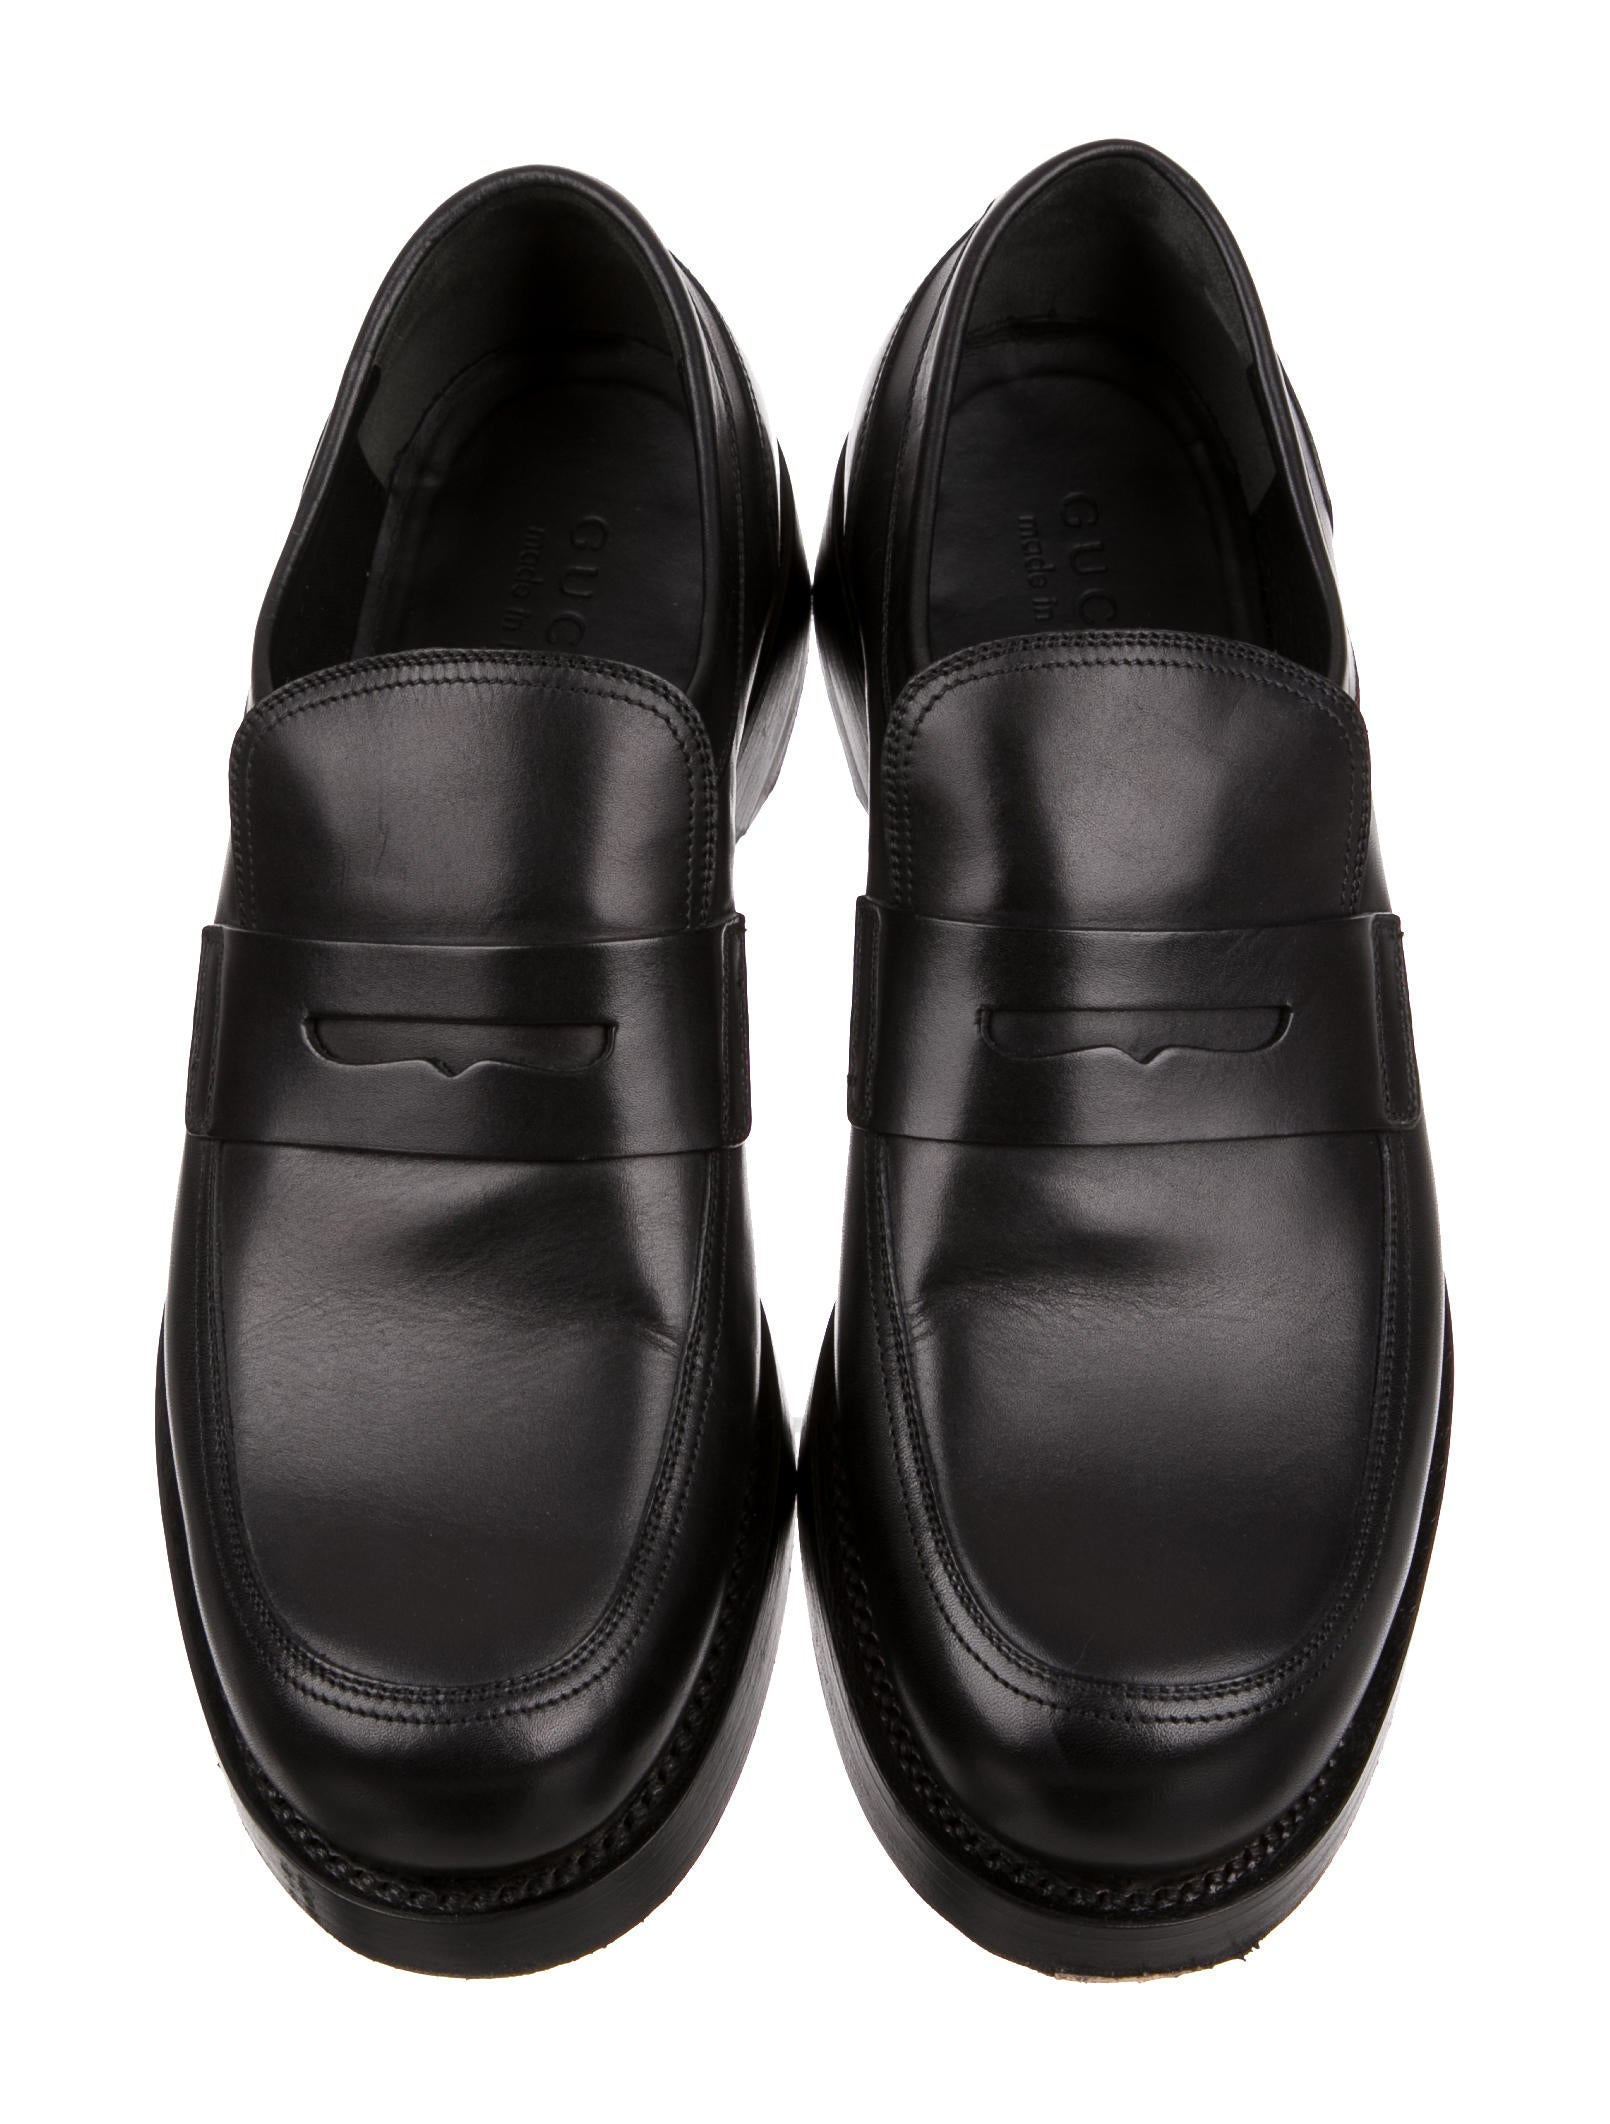 gucci leather penny loafers mens shoes guc130417 the. Black Bedroom Furniture Sets. Home Design Ideas